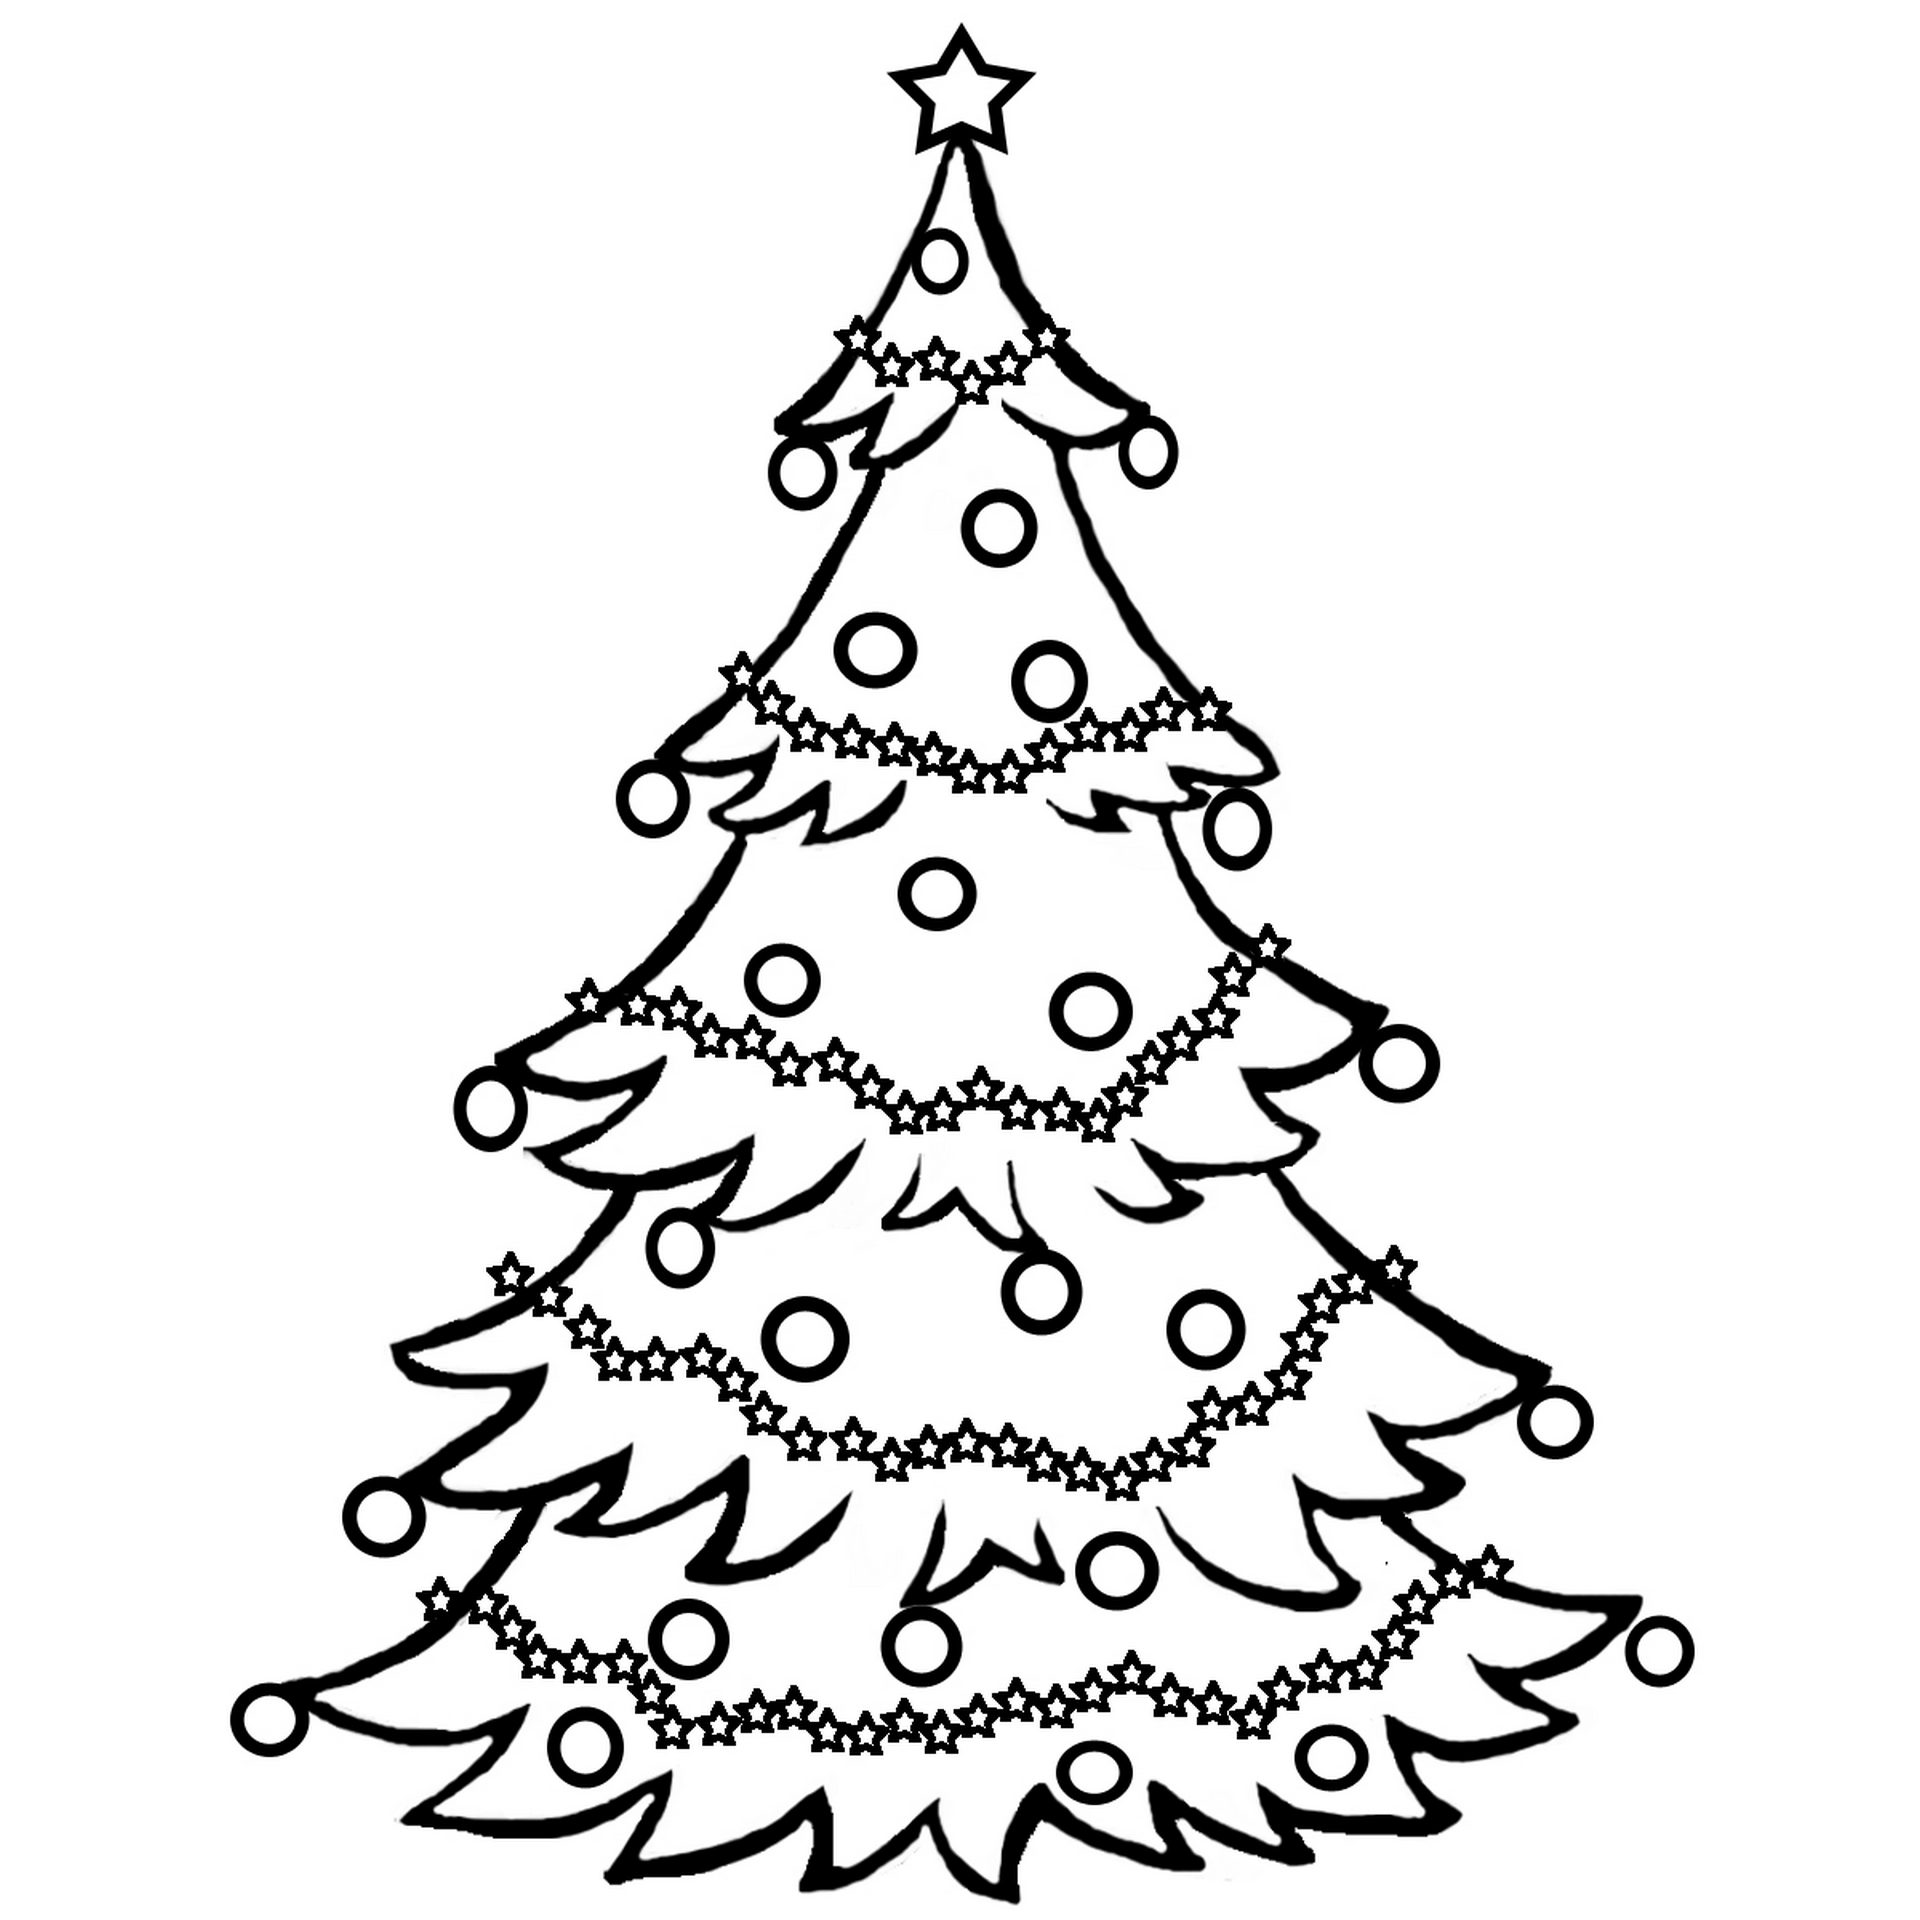 tree coloring pages christmas tree coloring pages for childrens printable for free coloring tree pages